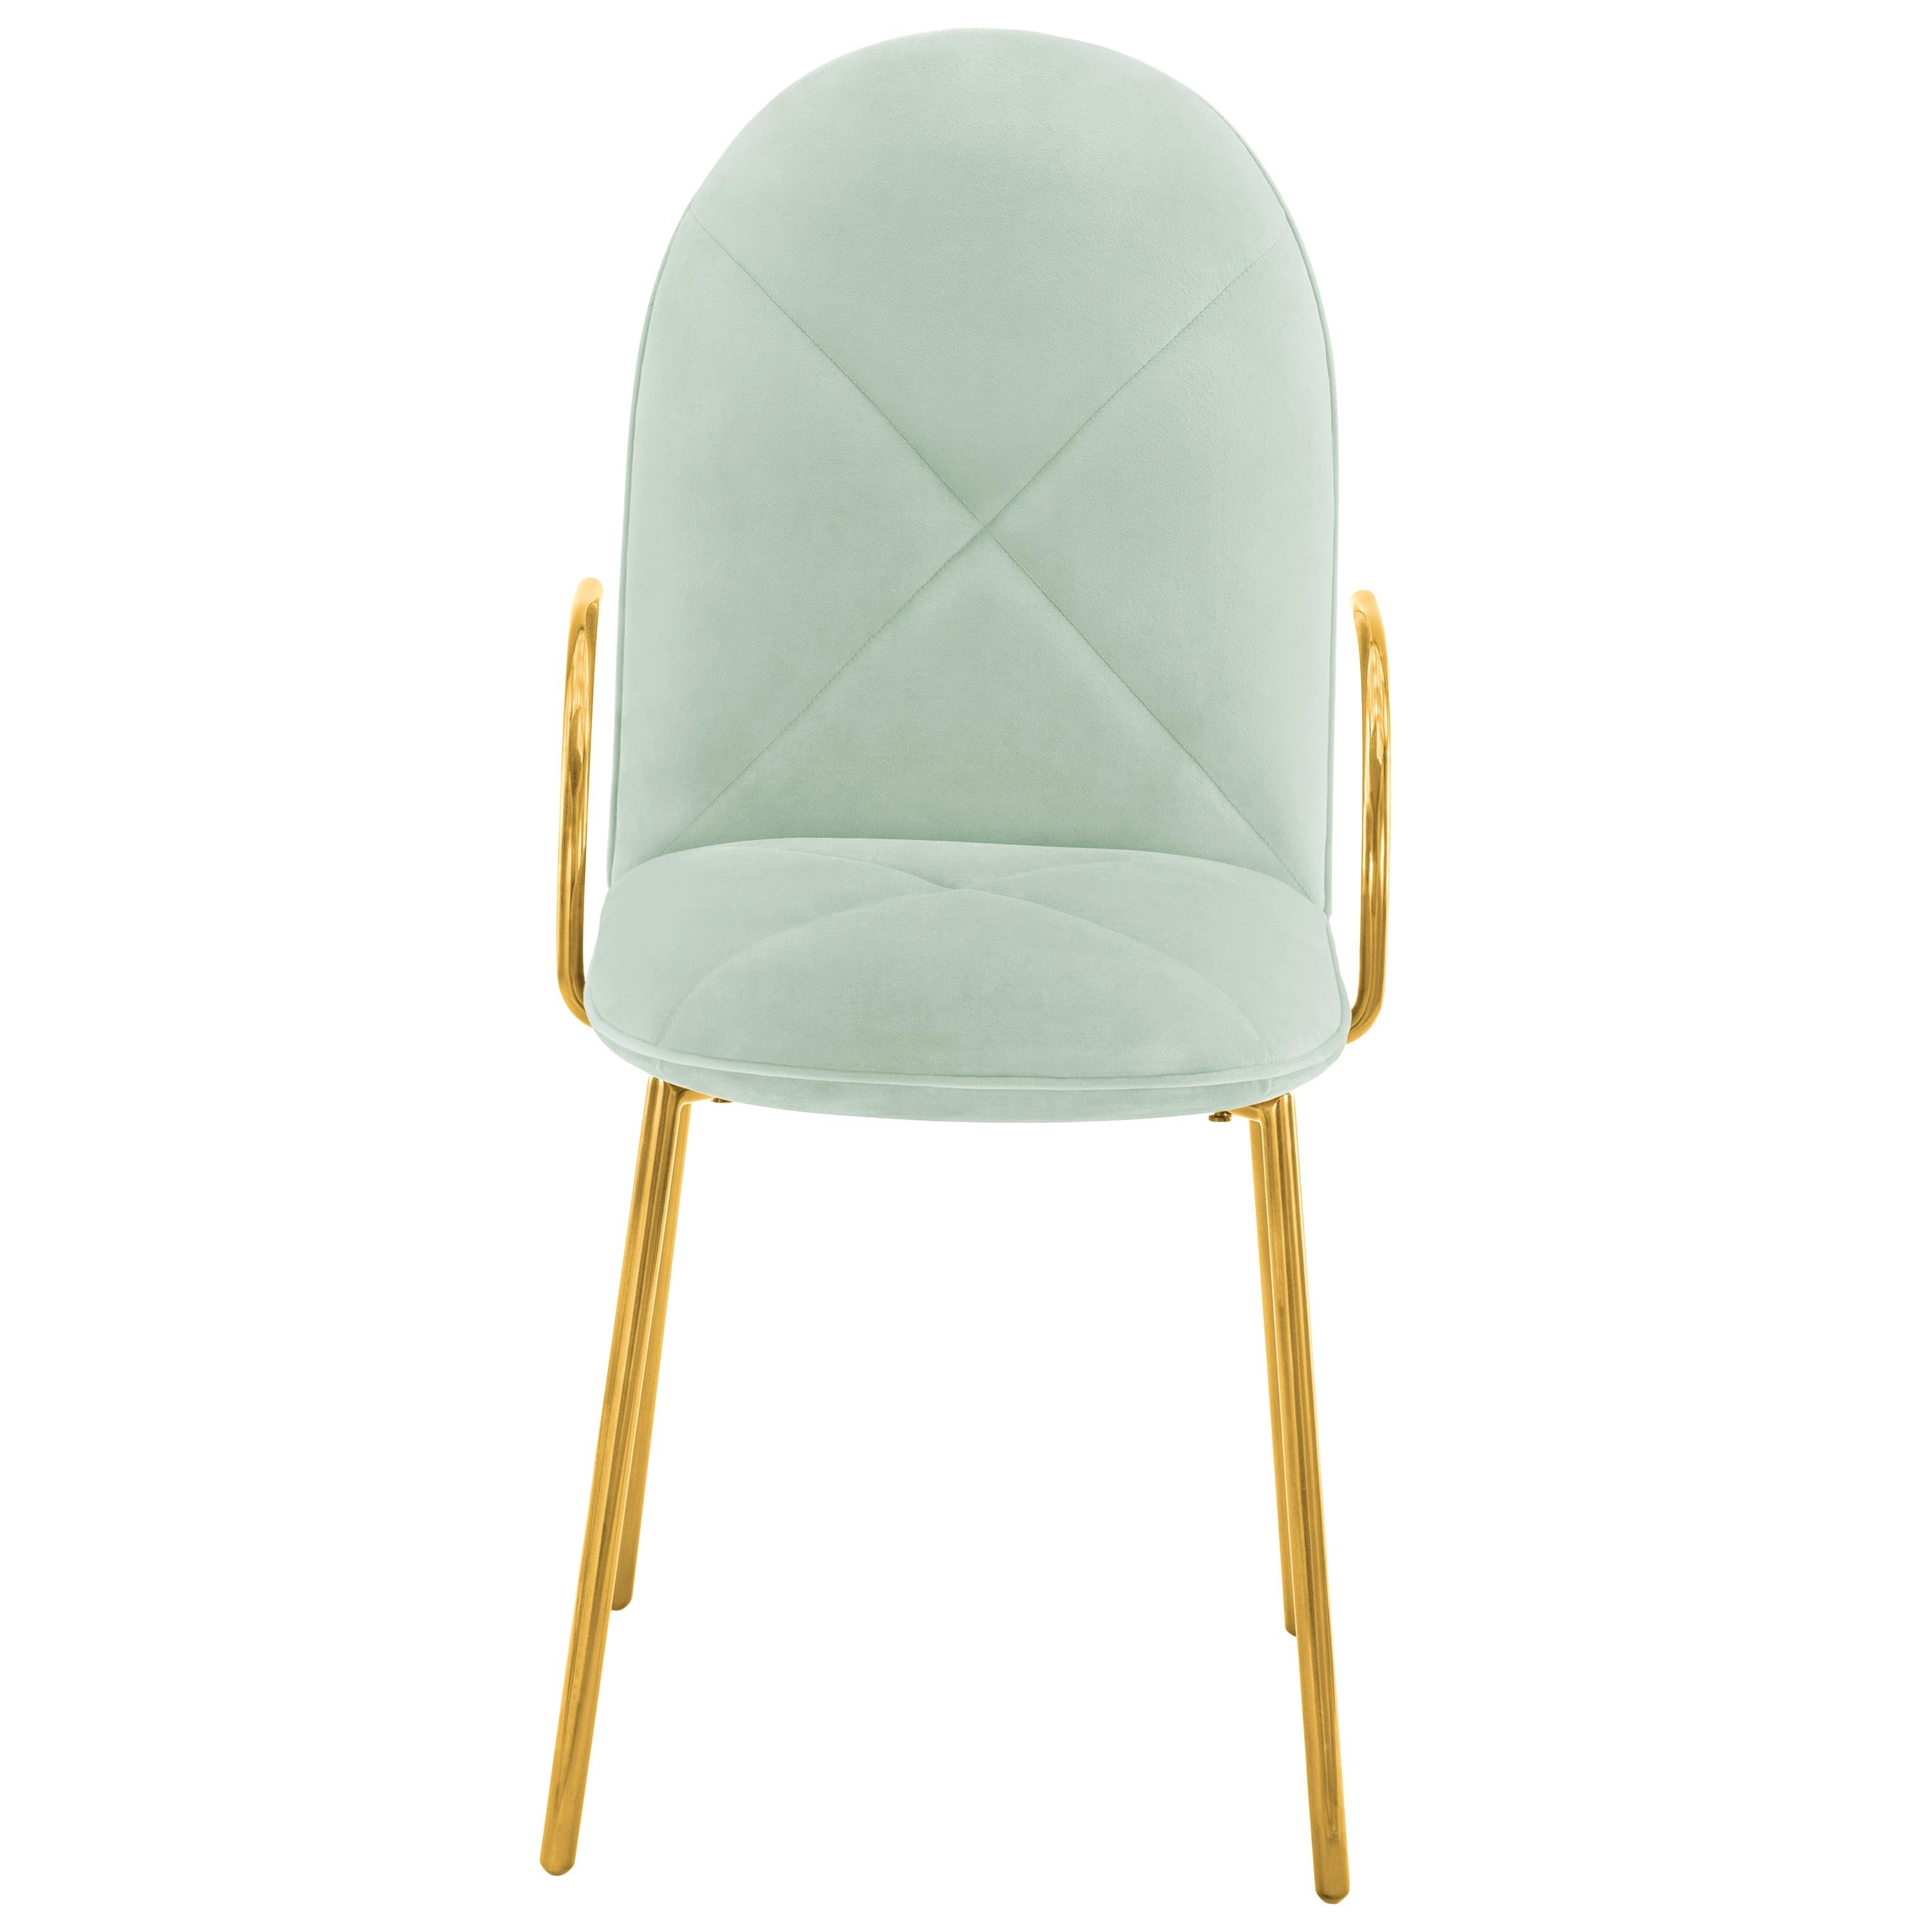 Orion Dining Chair with Plush Mint Green Velvet and Gold Arms by Nika Zupanc